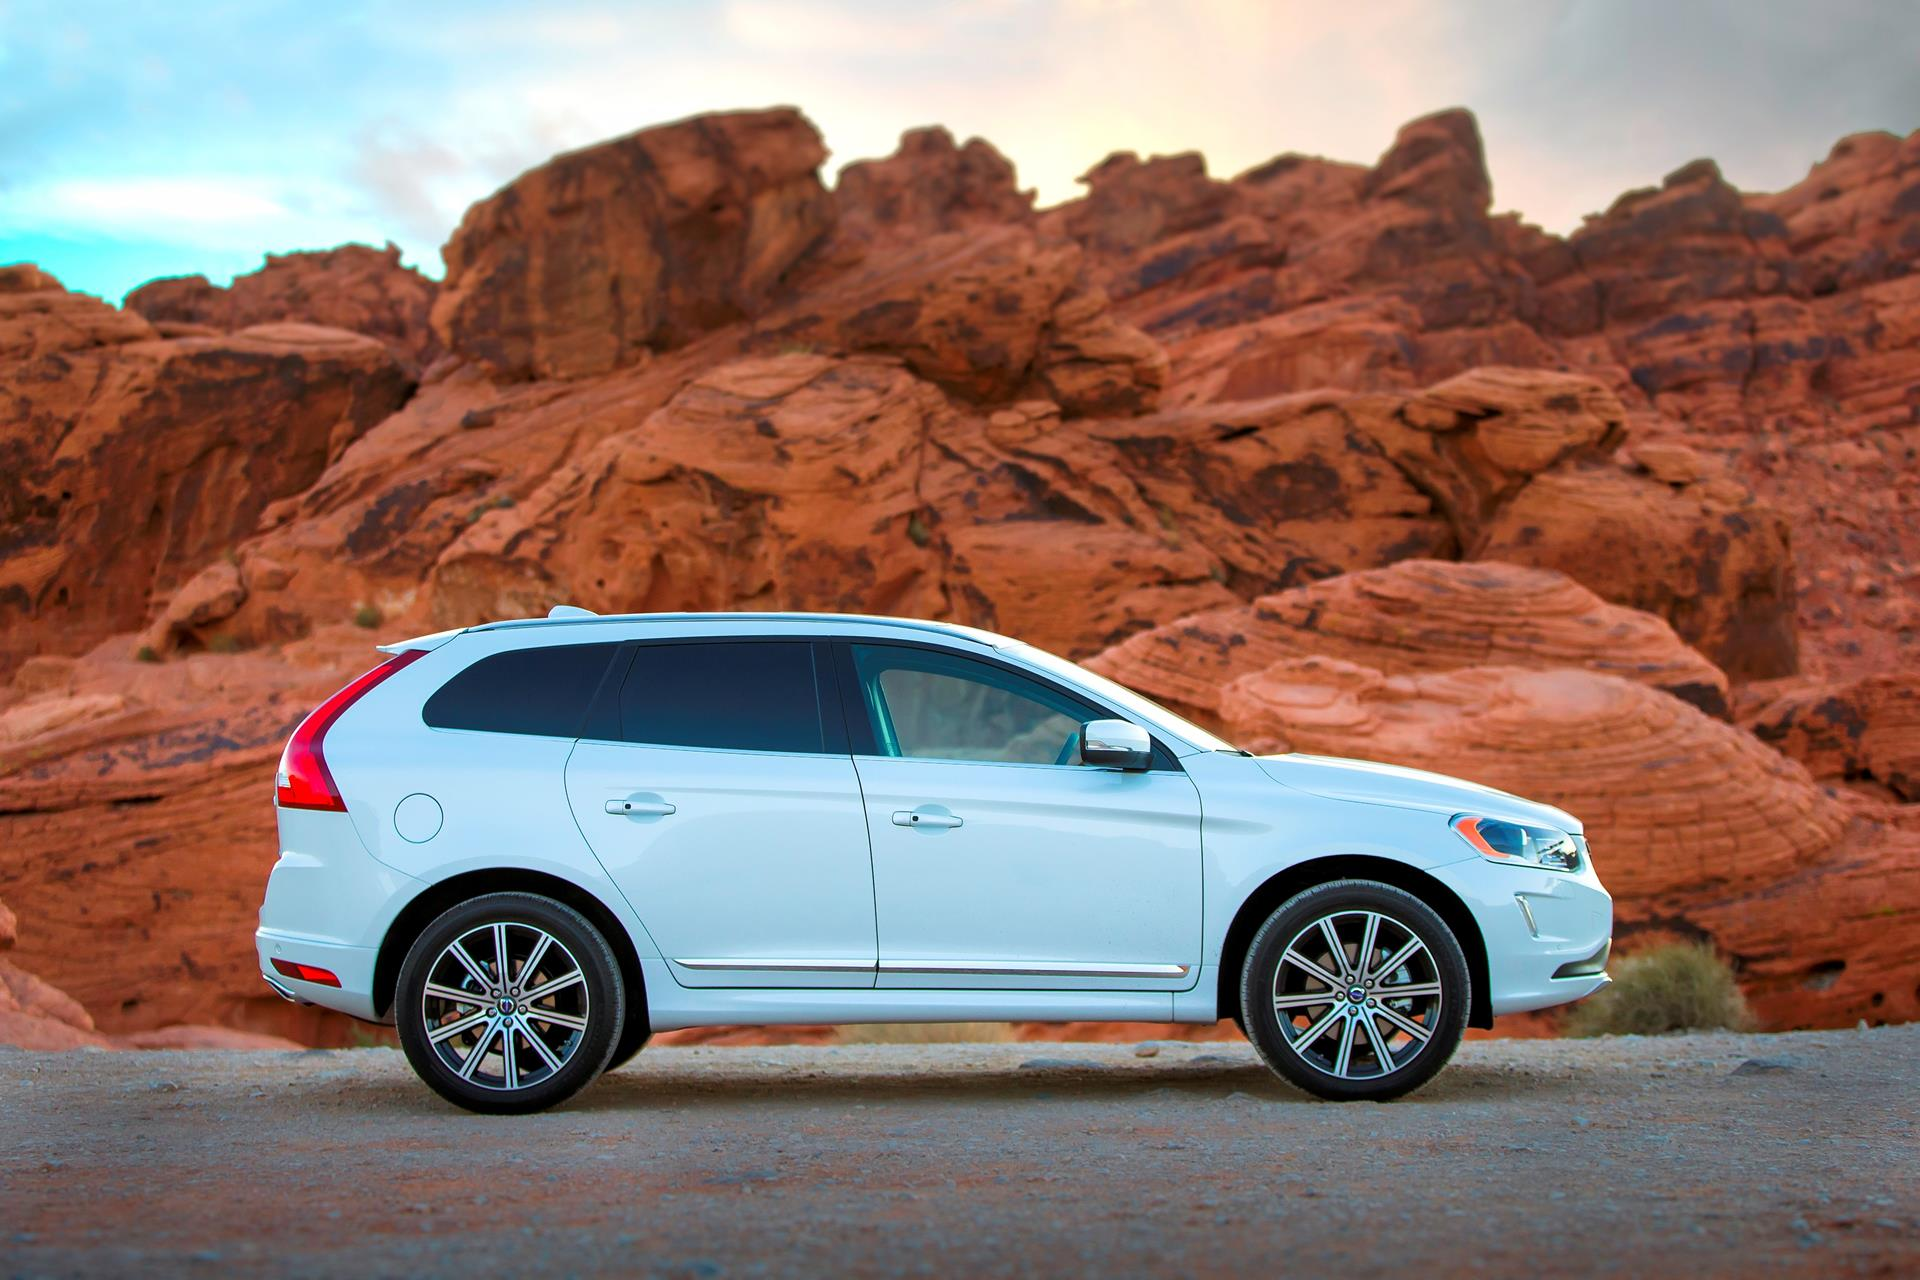 2015 volvo xc60 technical specifications and data engine dimensions and mechanical details. Black Bedroom Furniture Sets. Home Design Ideas